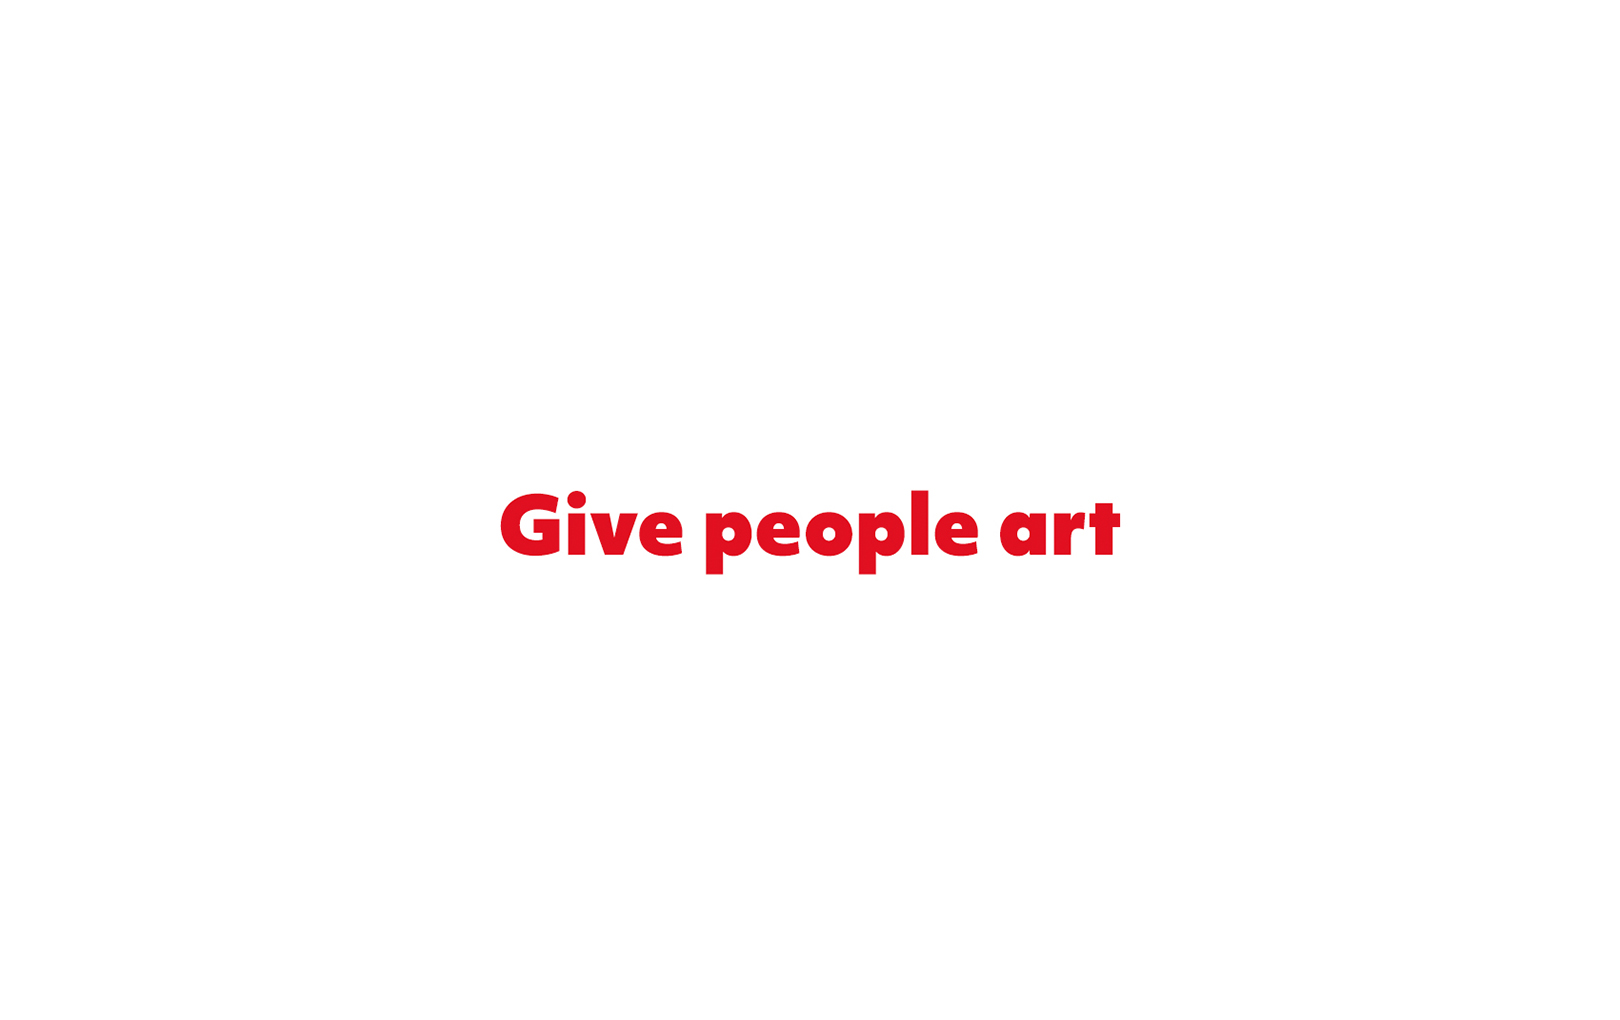 Give people art - Piquant Media, Limerick City